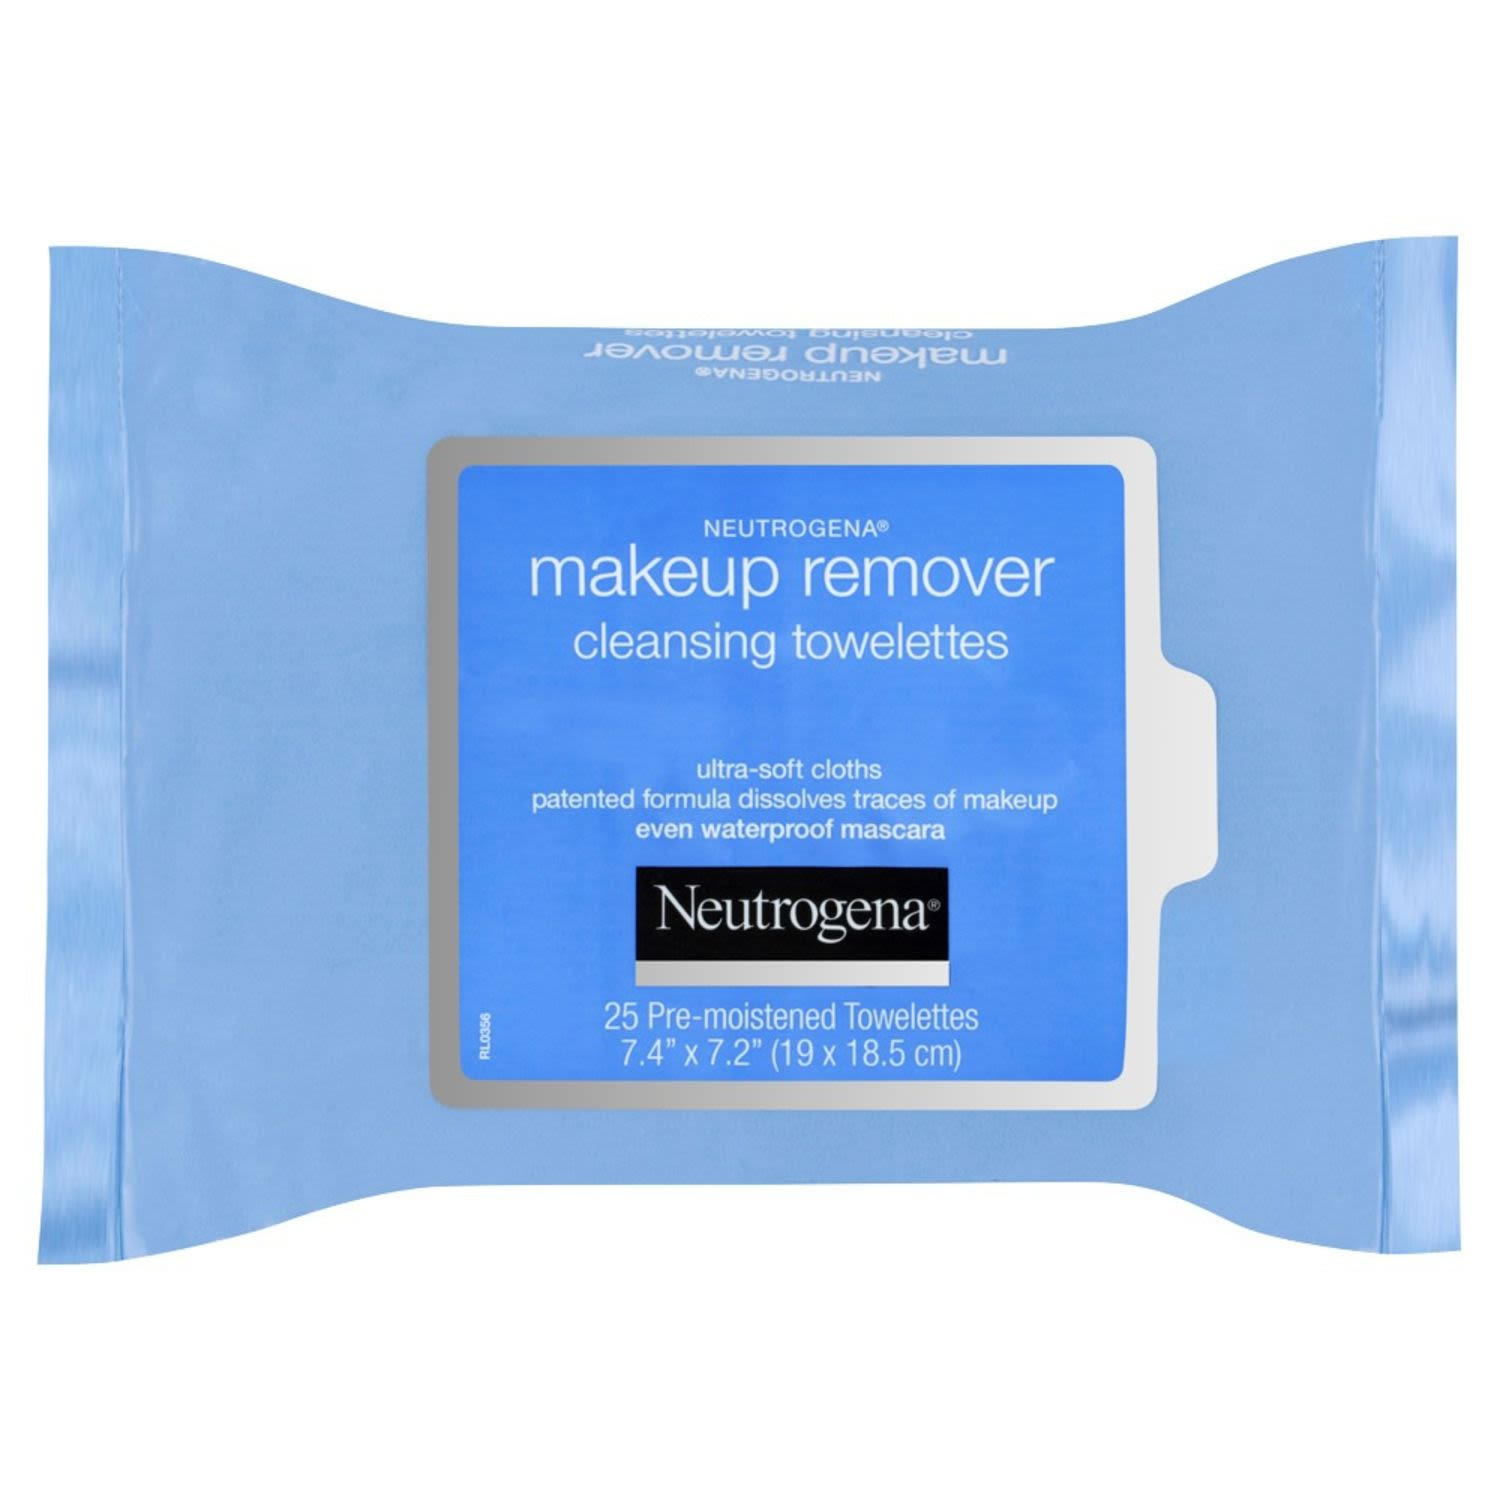 Neutrogena Makeup Remover Cleansing Towelettes Refill, 25 Each